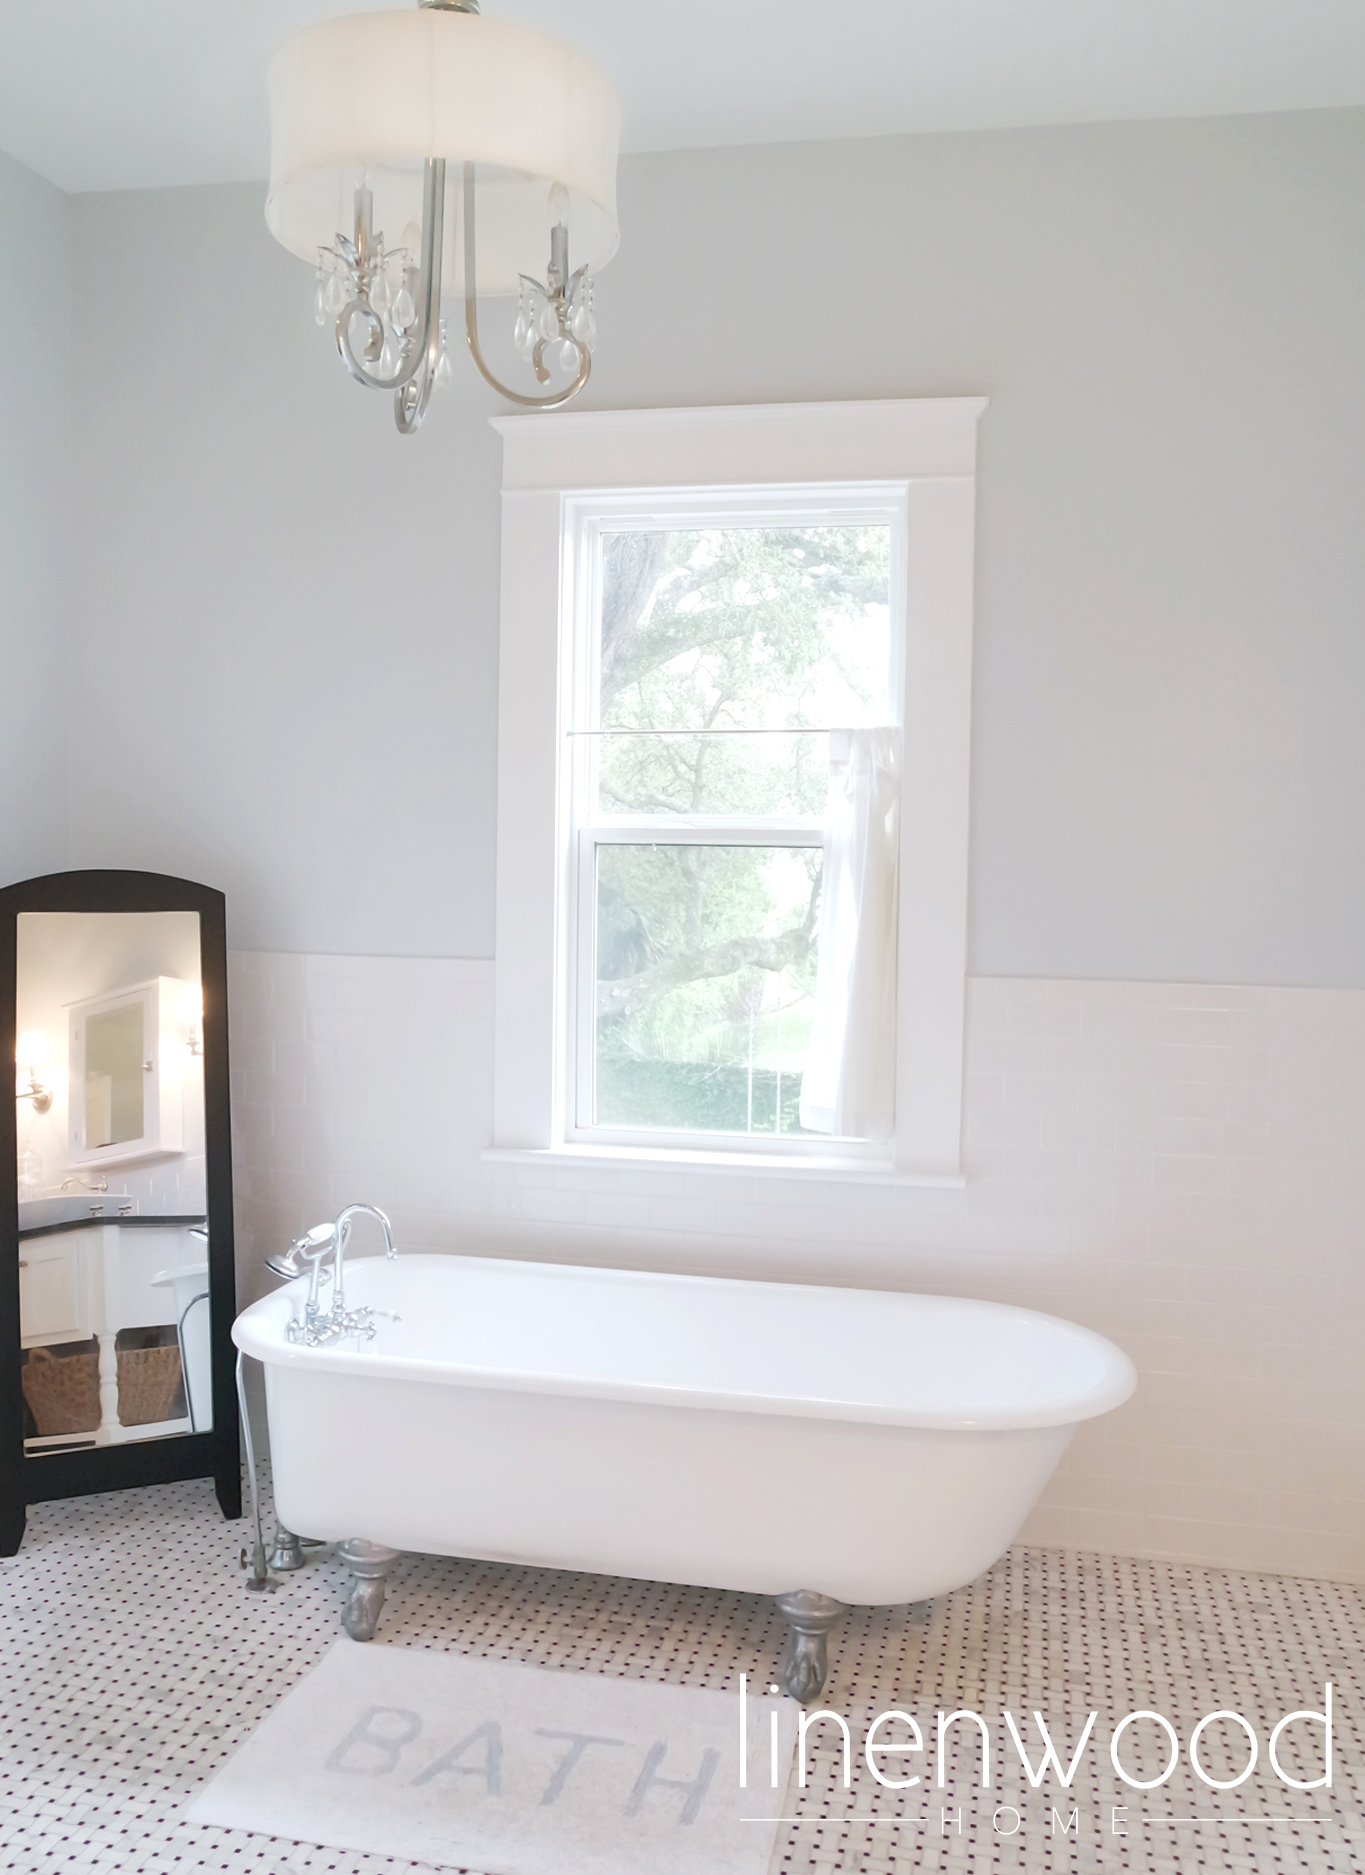 Master bathroom claw foot tub.